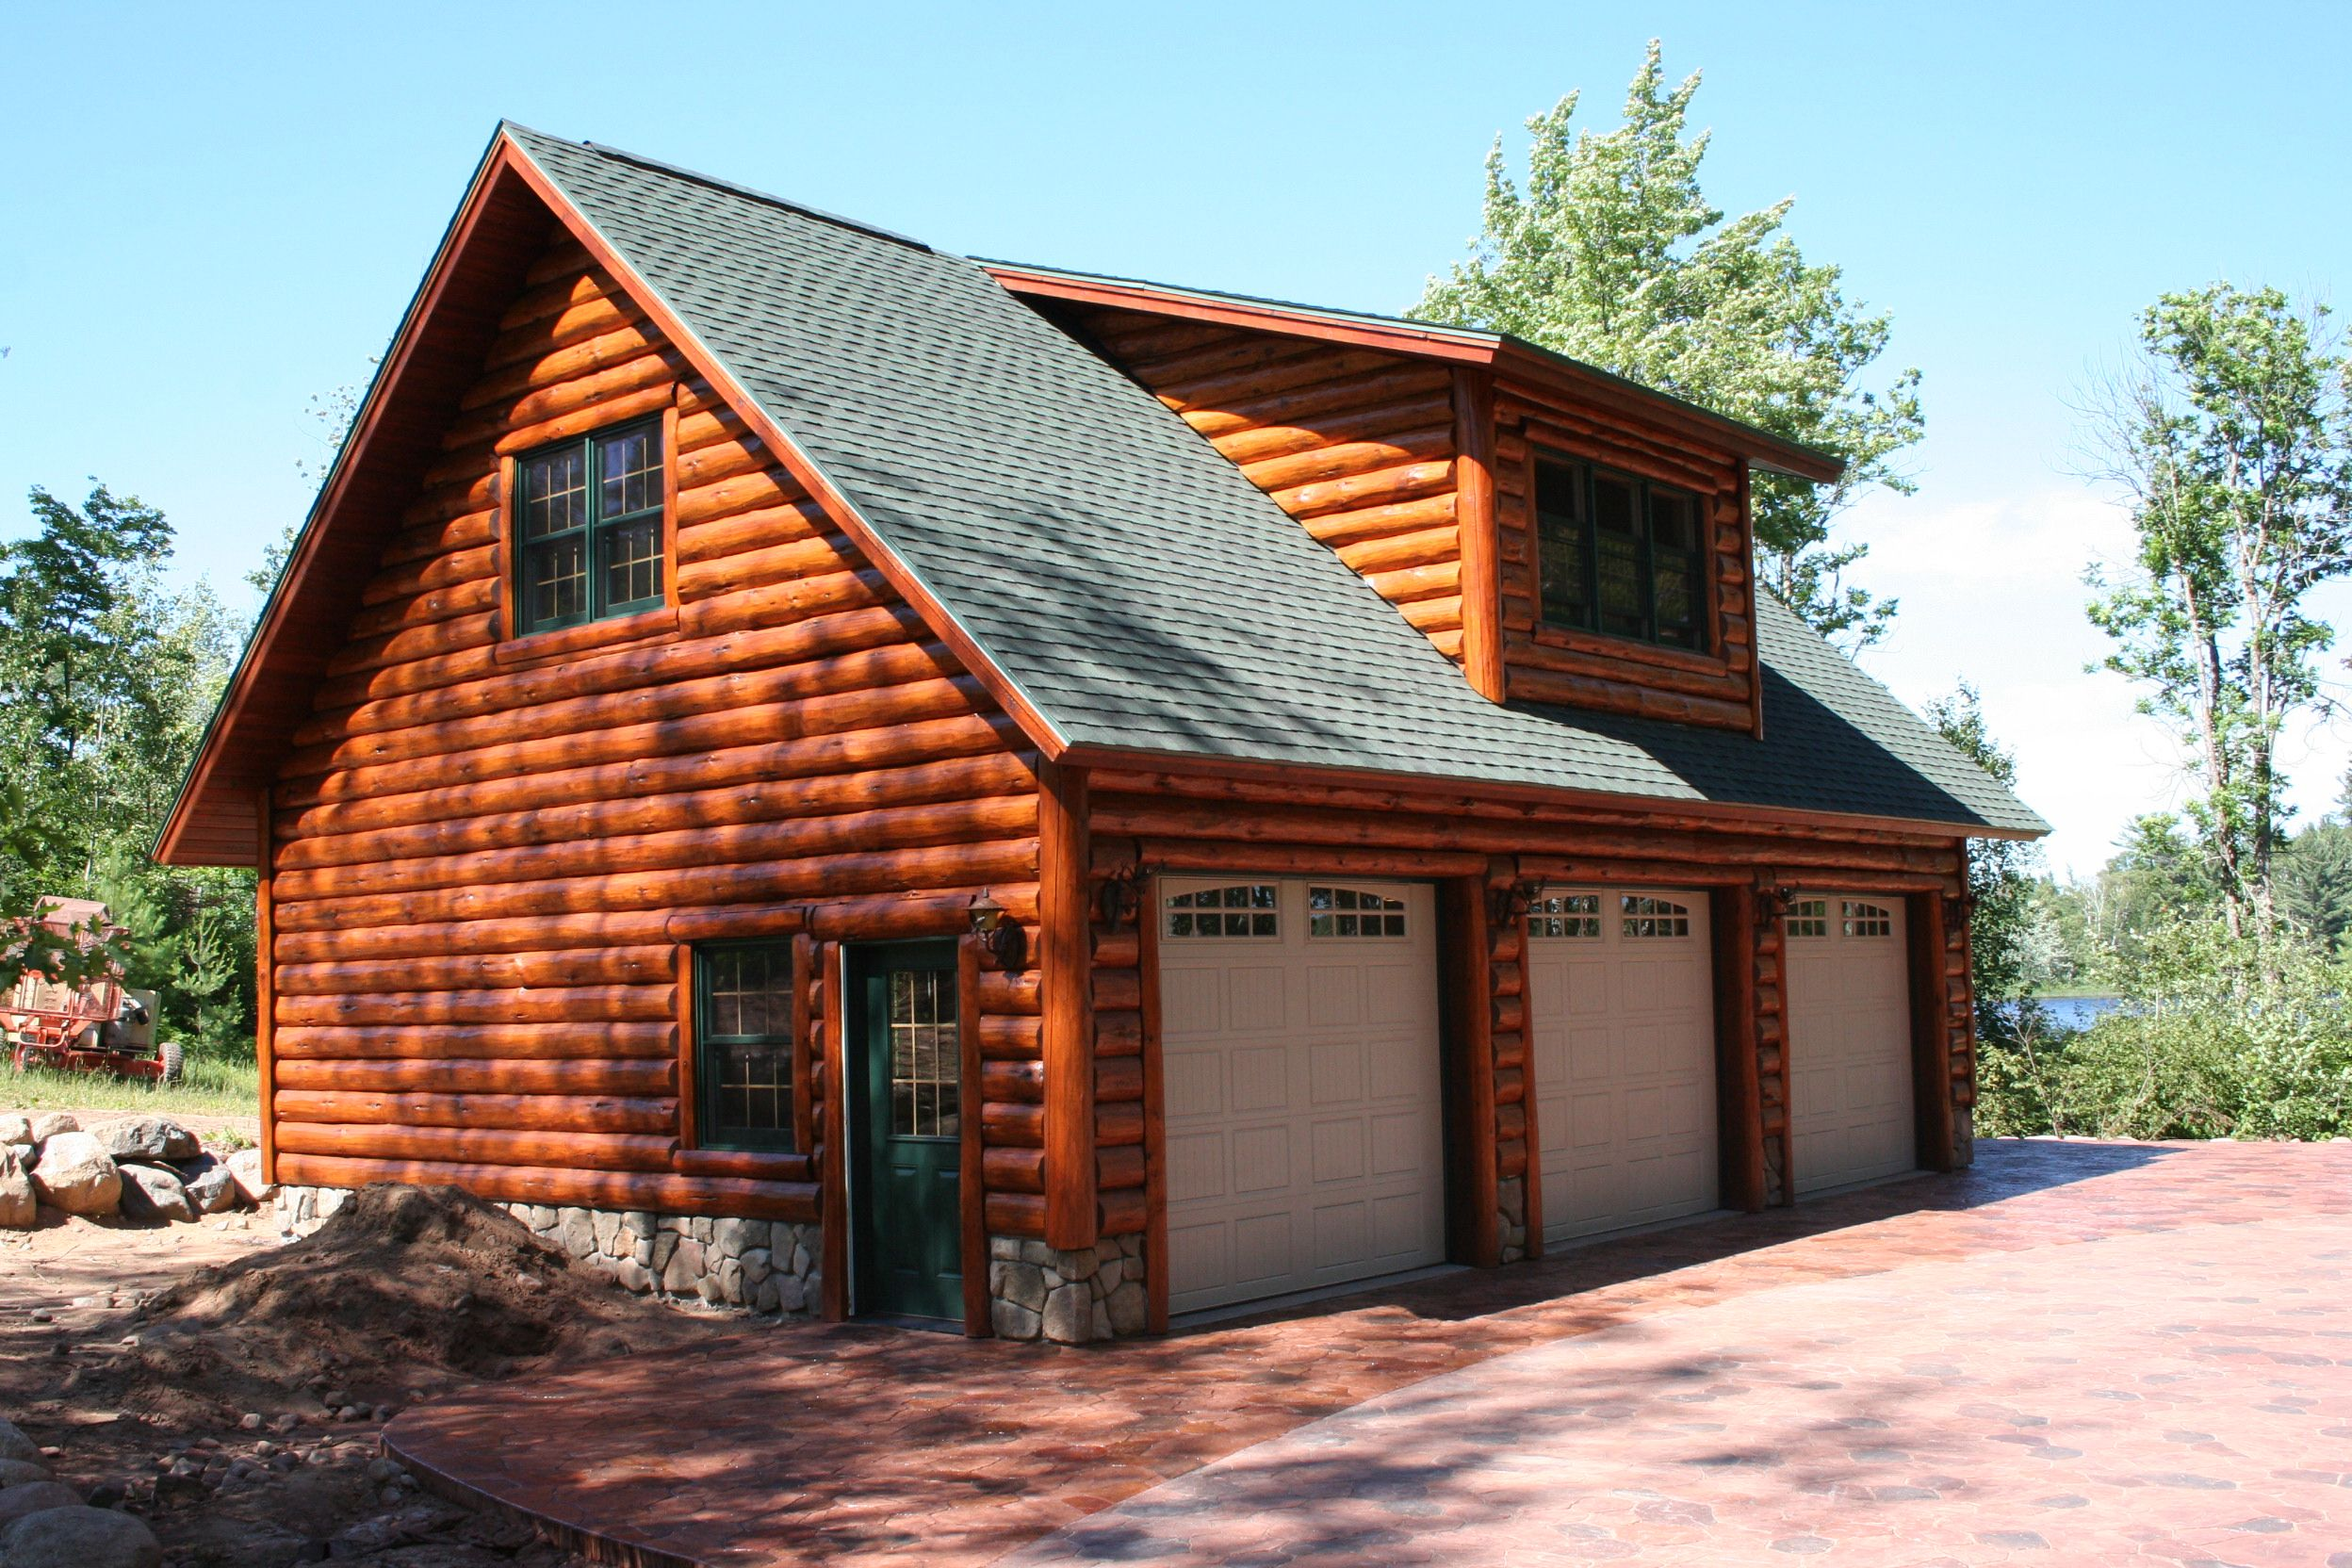 Log cabin garage with lofts garage with hand scribe log E log siding